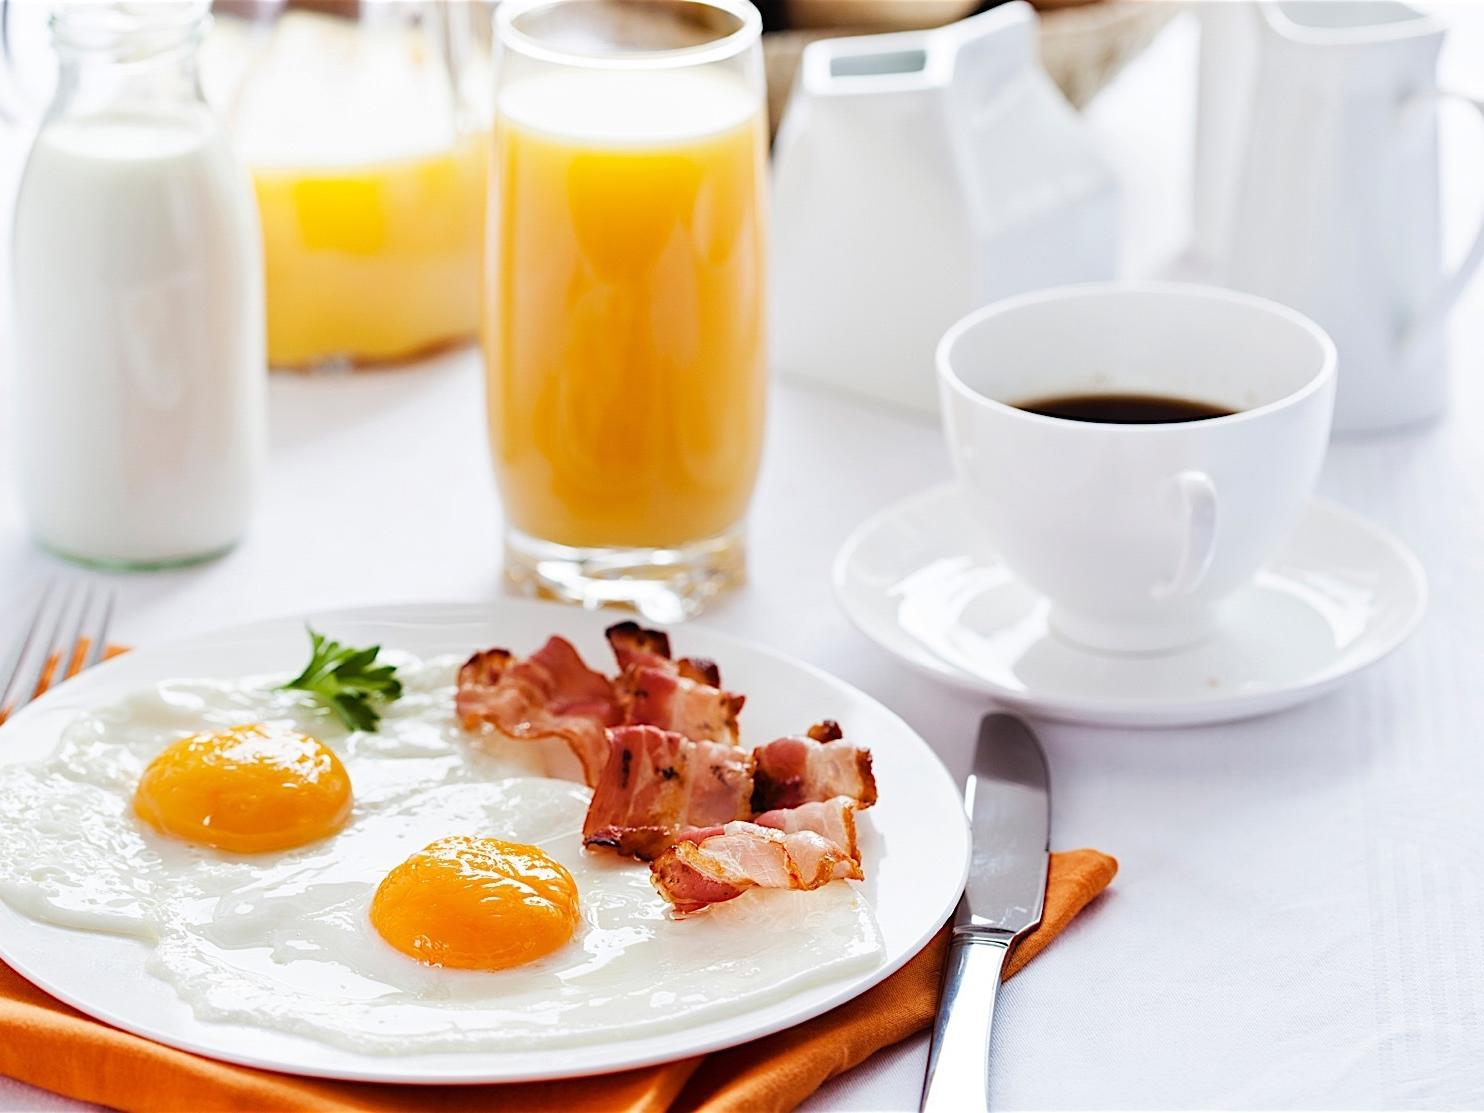 eggs, bacon, orange juice and coffee